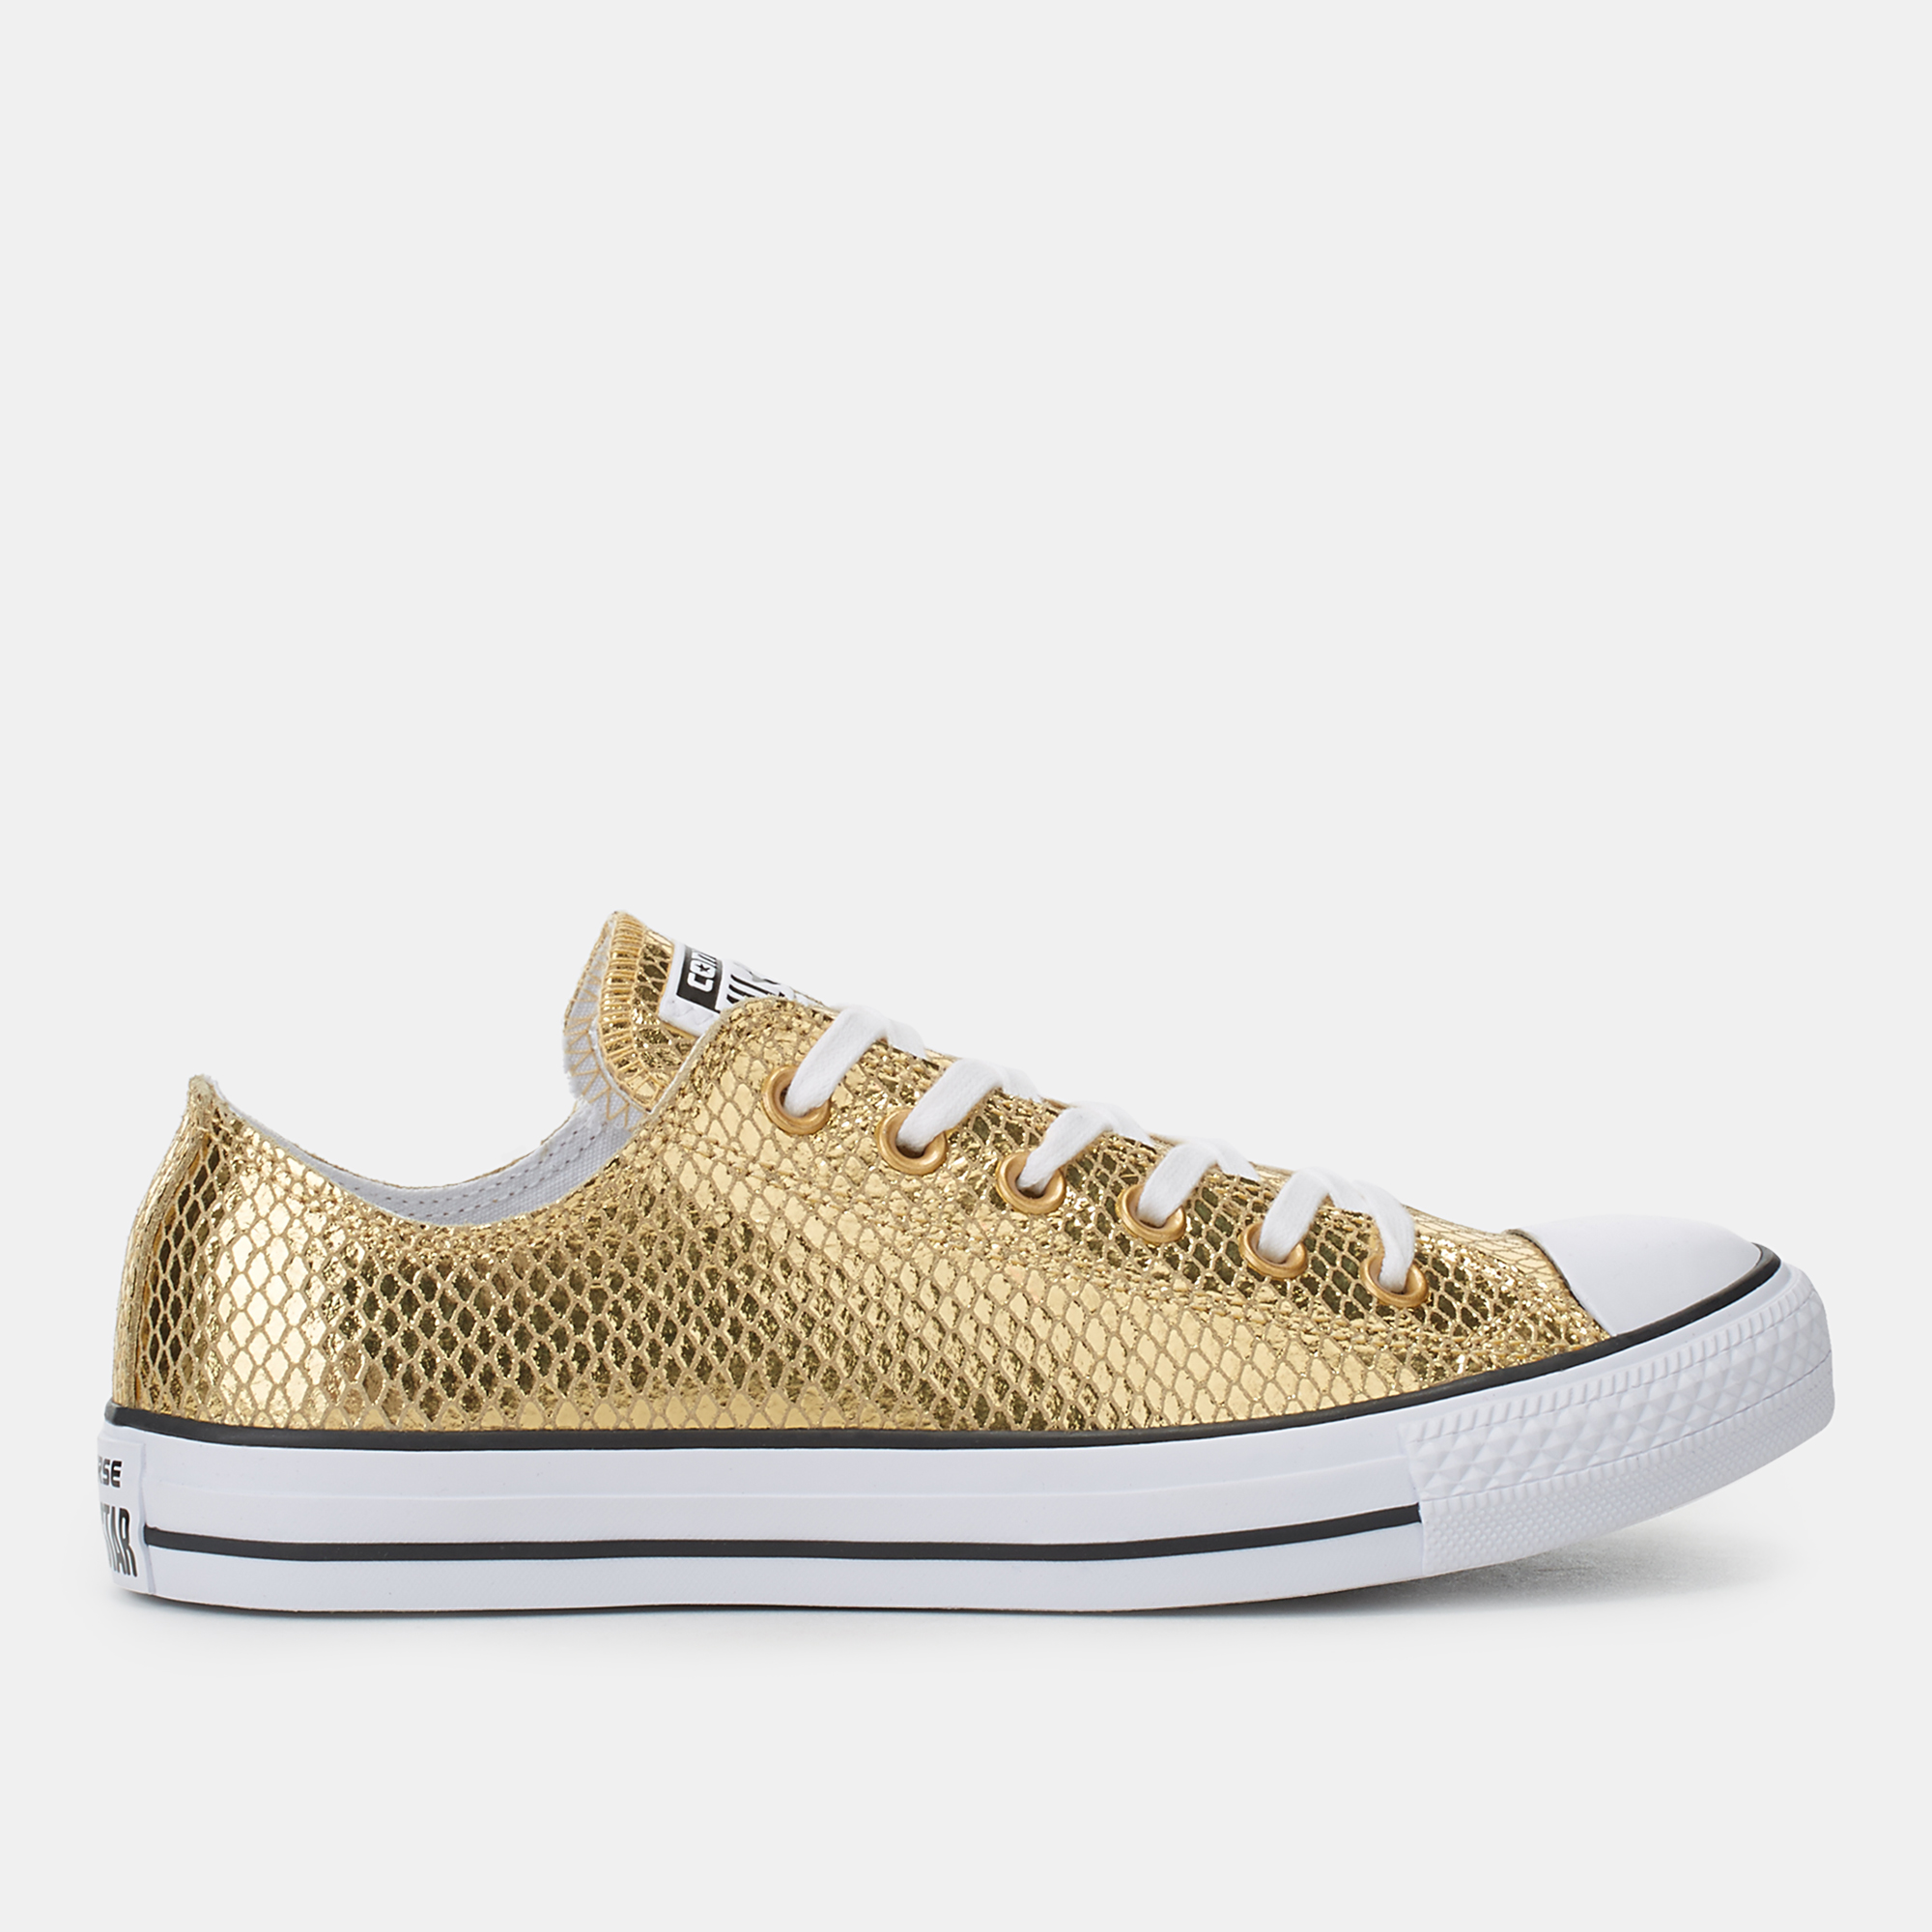 Converse Chuck Taylor All Star Metallic Snake Print Shoe